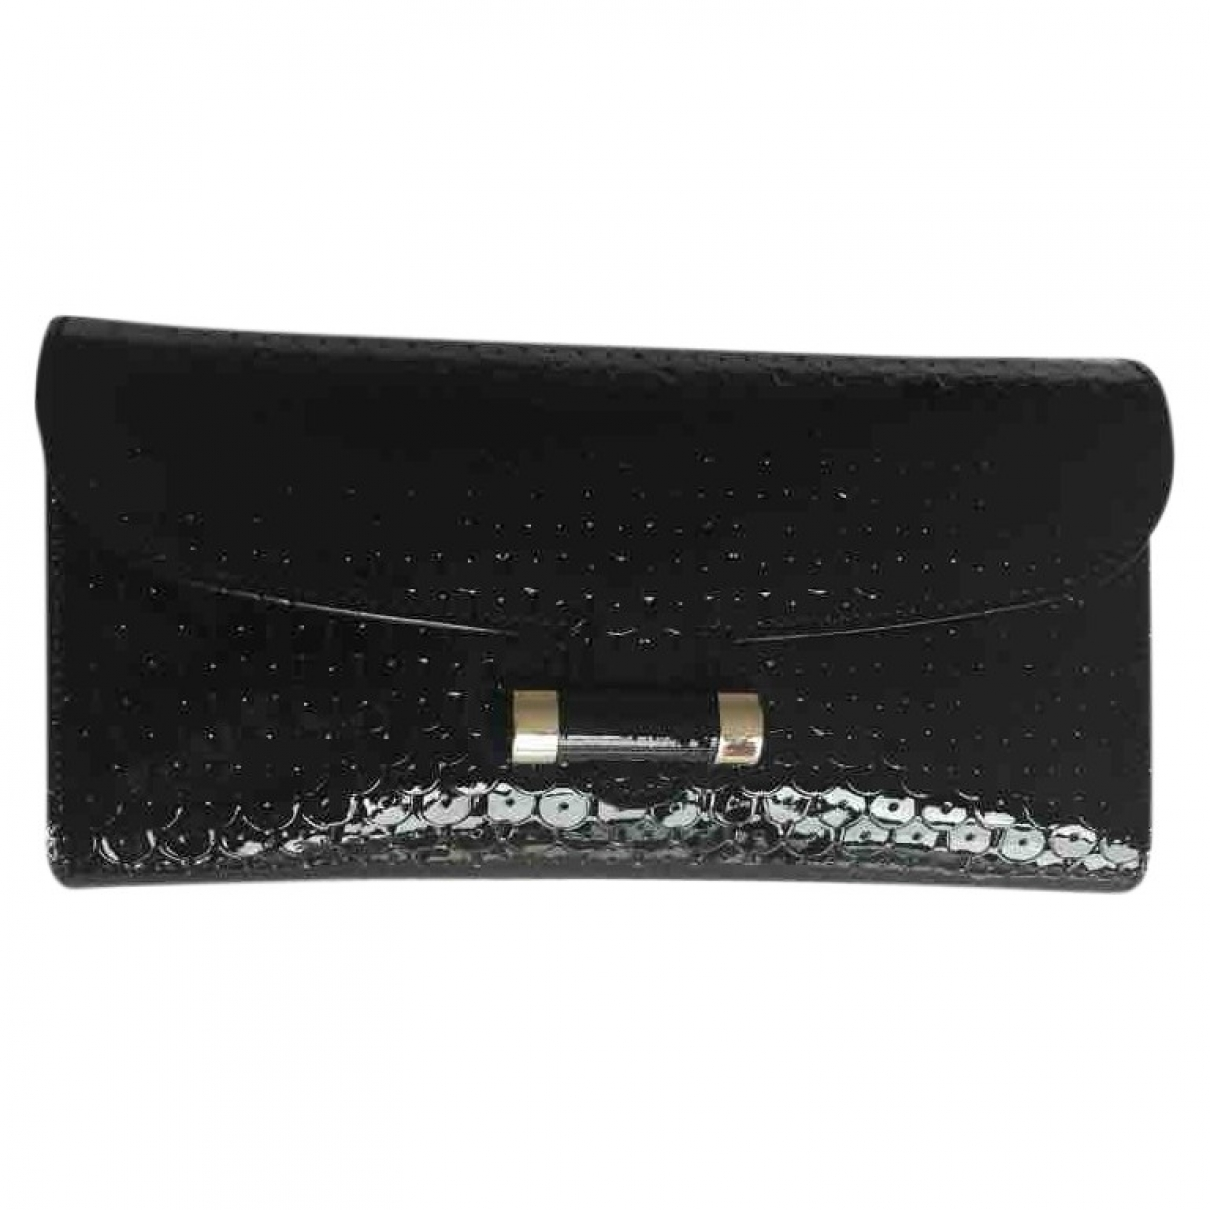 Yves Saint Laurent \N Black Patent leather Clutch bag for Women \N